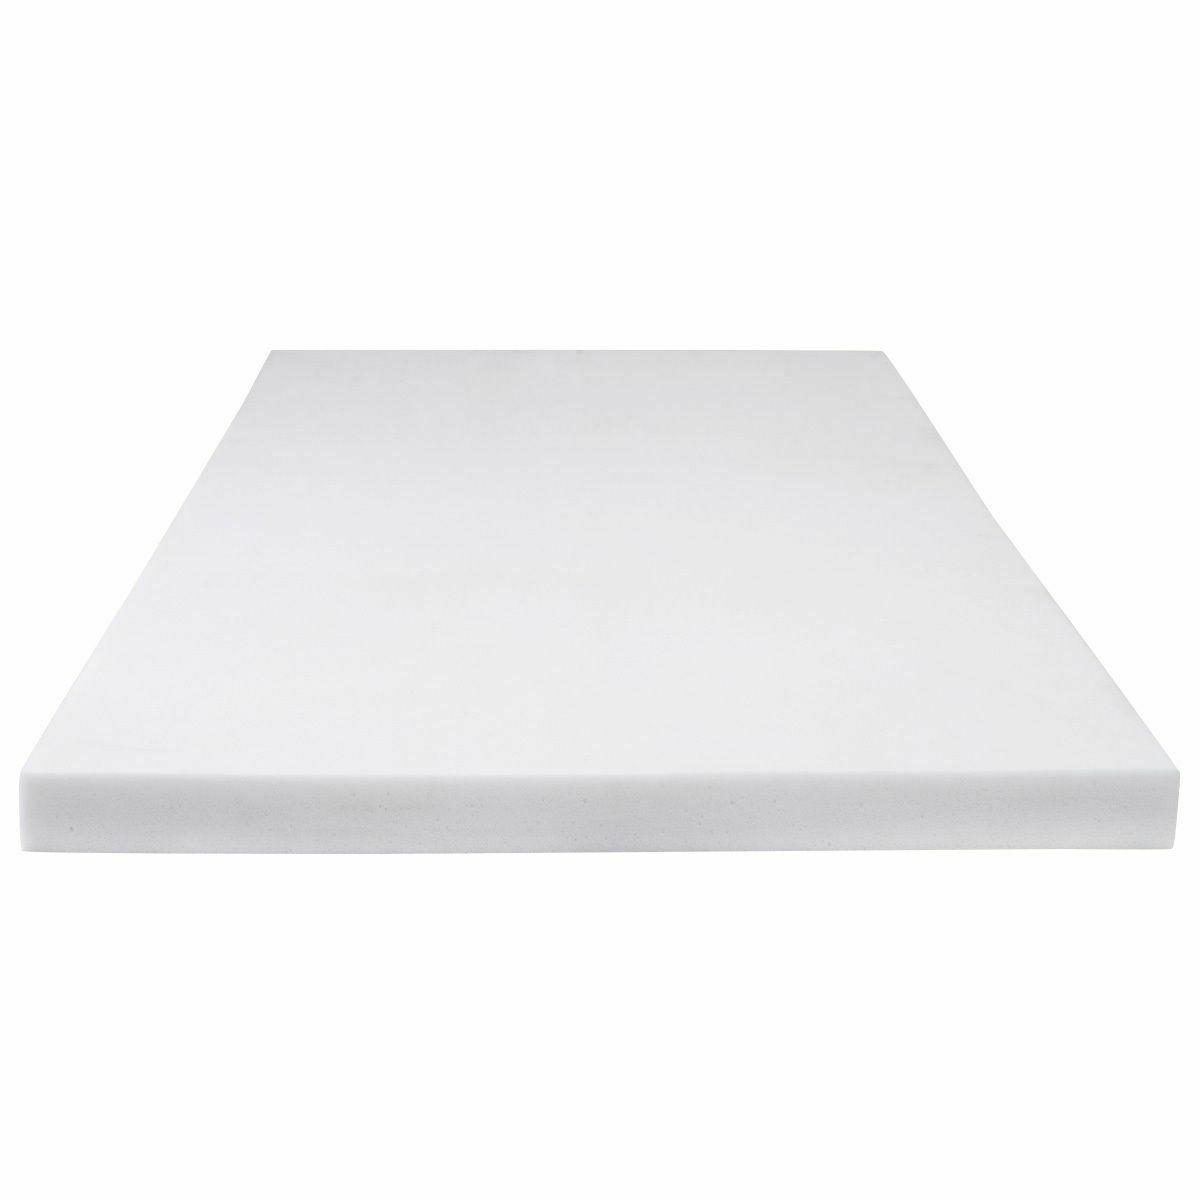 "3"" QUEEN MEMORY , BED TOPPER 80""x60""x3"" FOAM MATTRESS PAD"